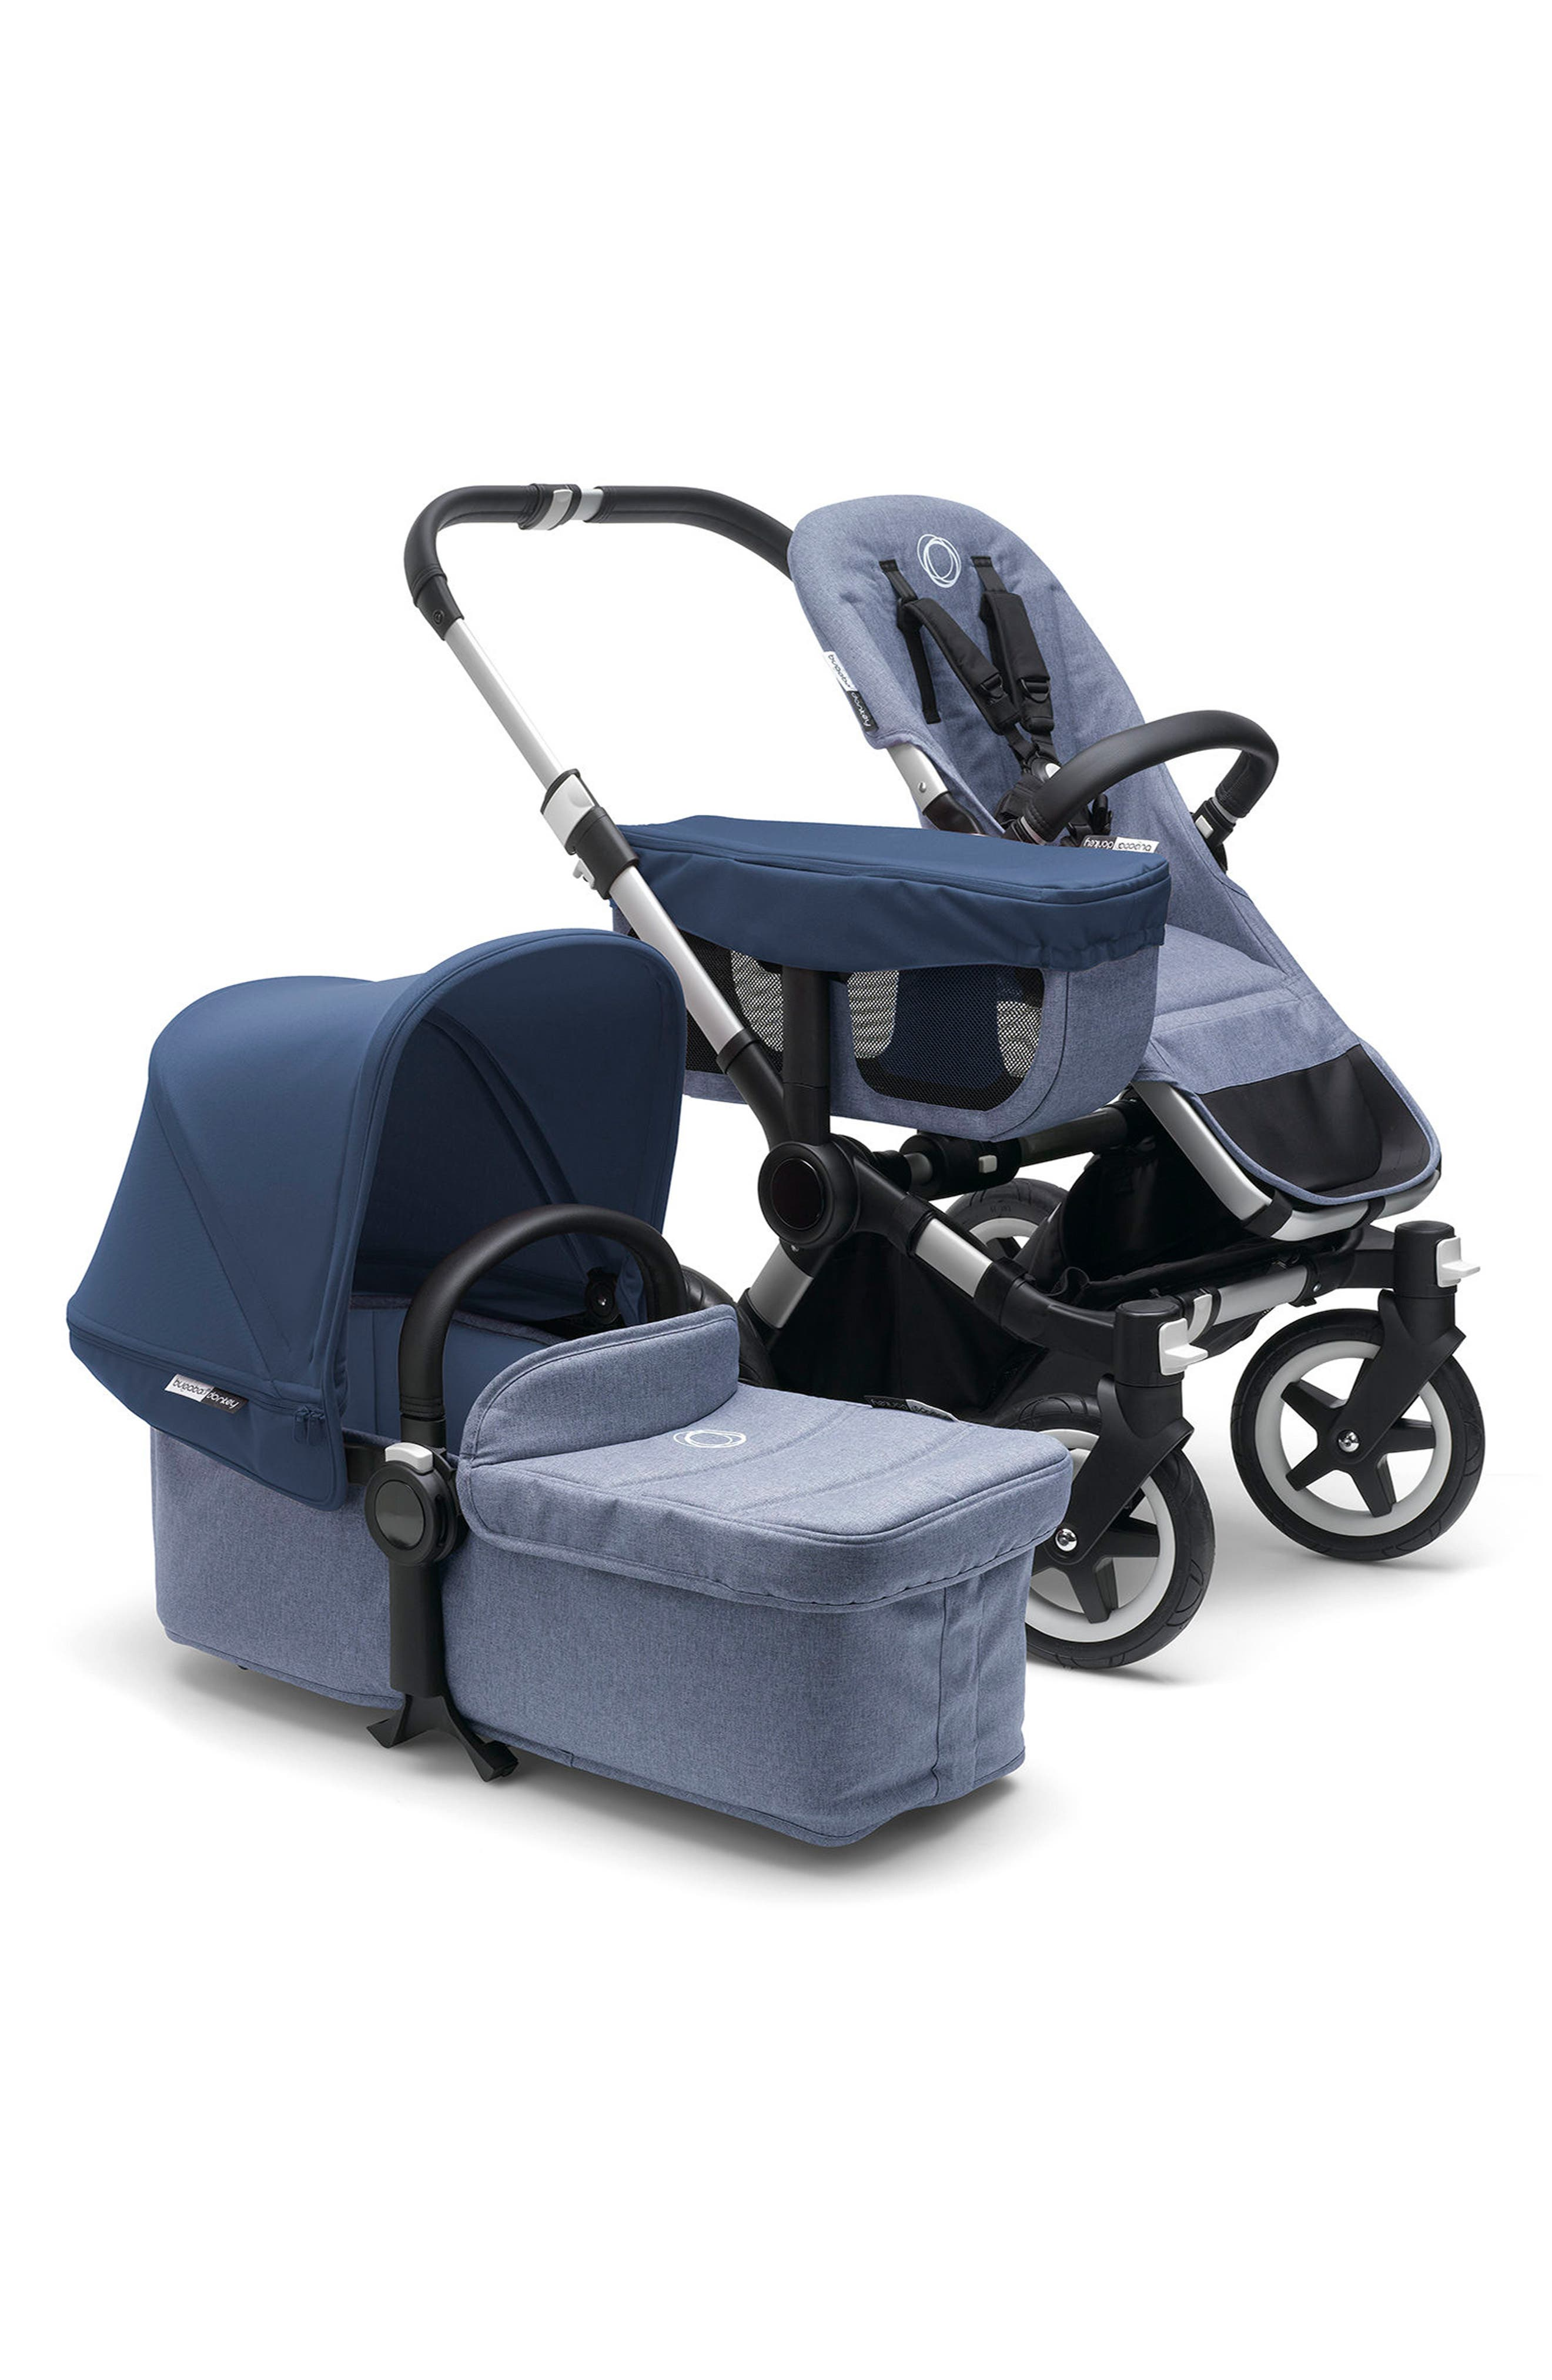 Alternate Image 1 Selected - Bugaboo Donkey2 Mono Complete Stroller with Bassinet